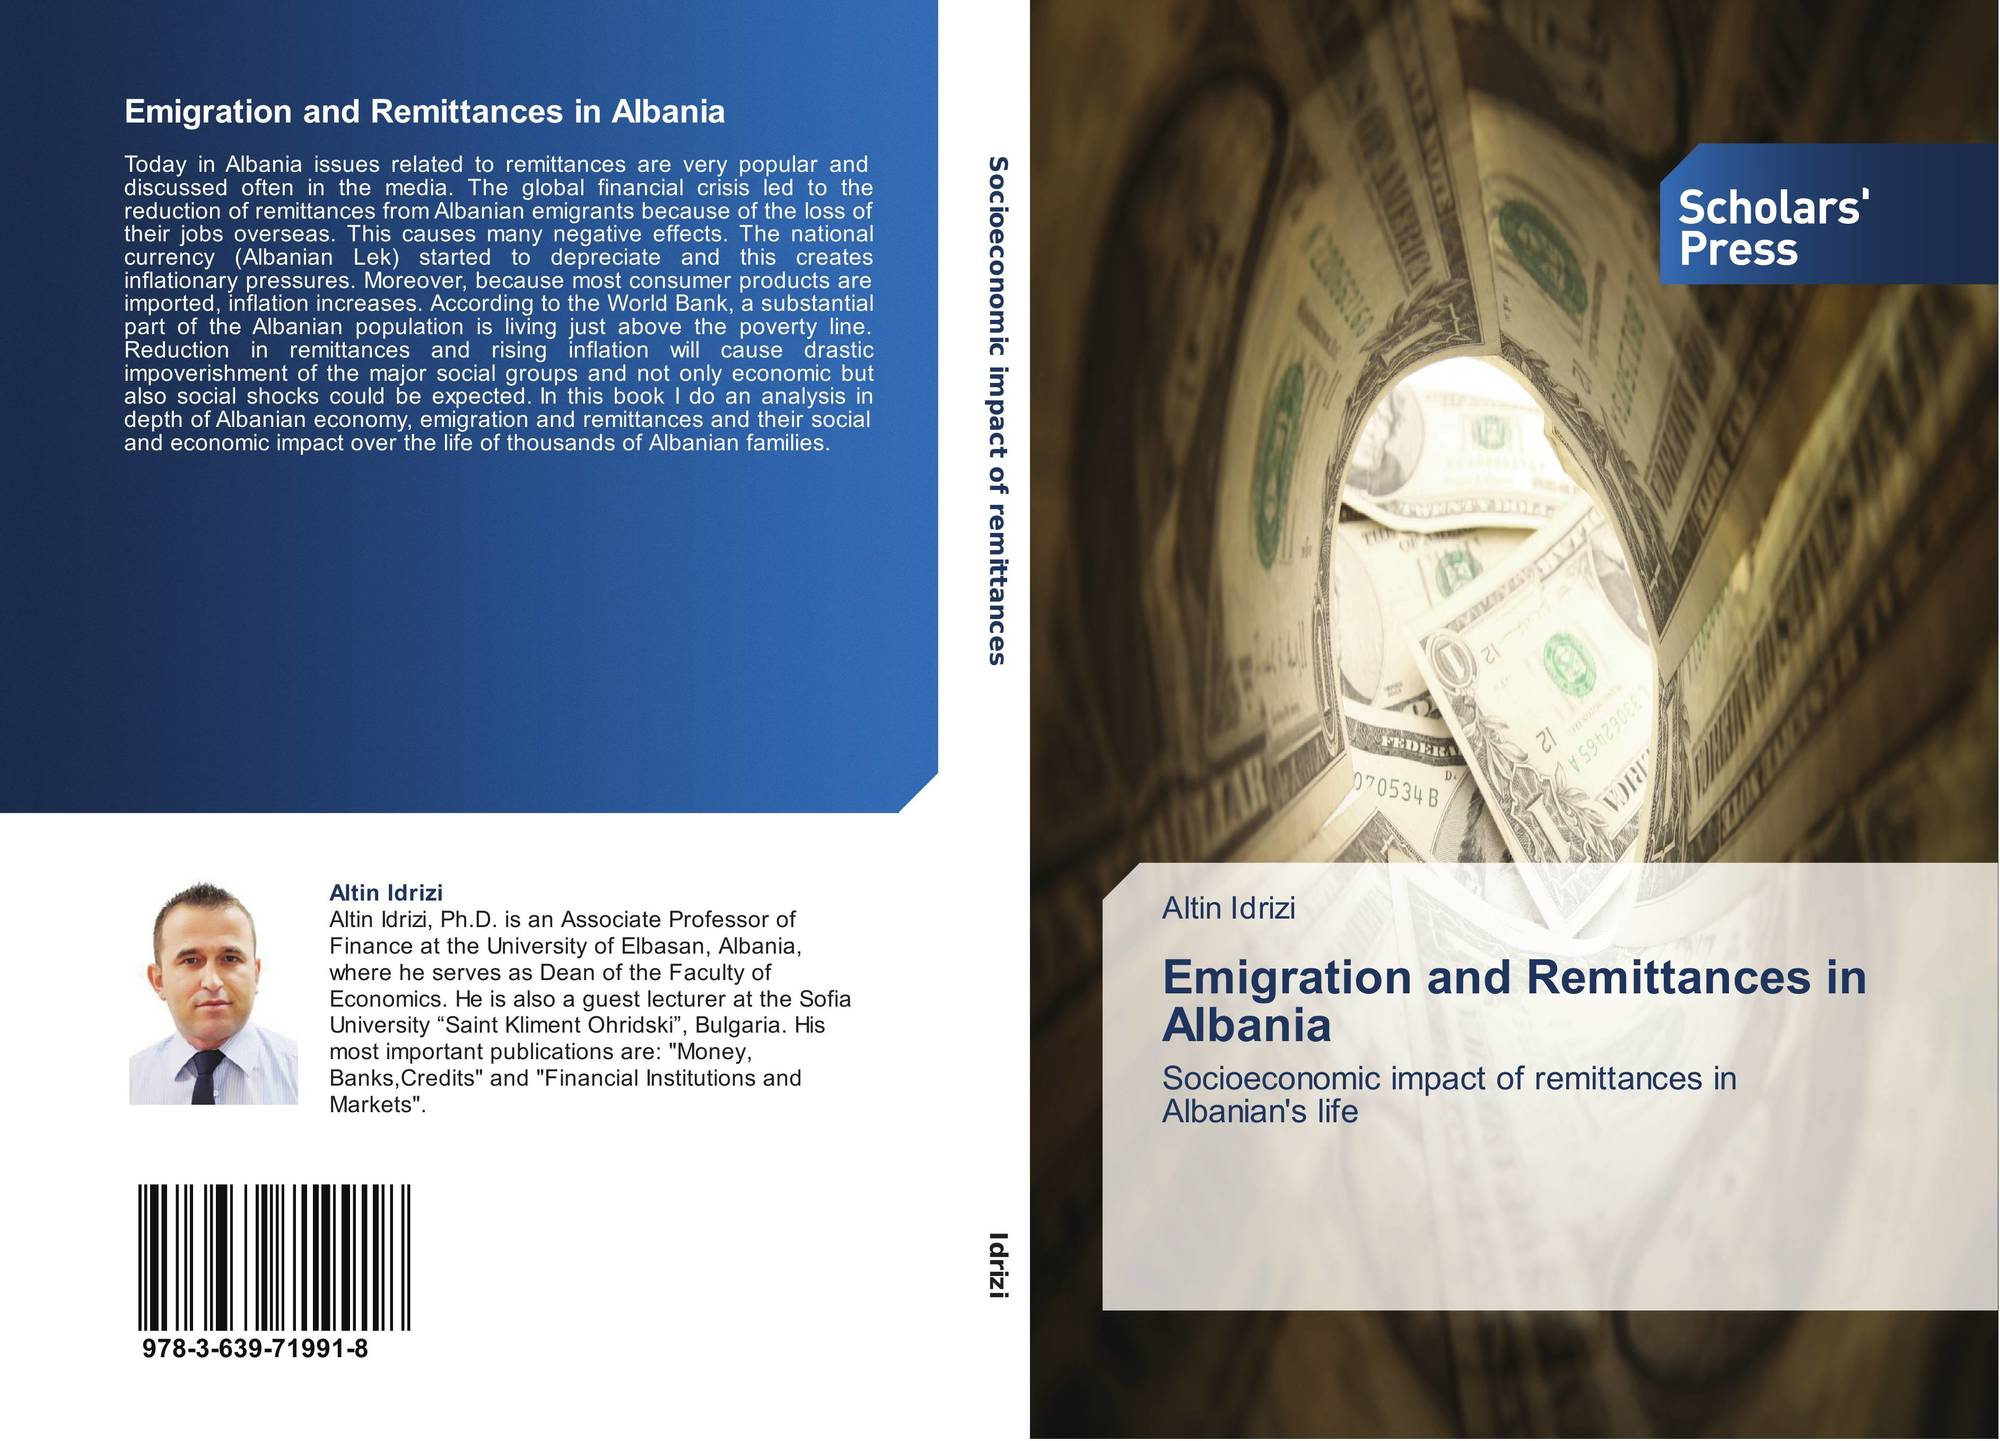 the impact of remittances on albanian Migration and remittances in balkan 5: a comparative evidence  55 synthesis of economic impact of remittances on the well  migration and remittances in.